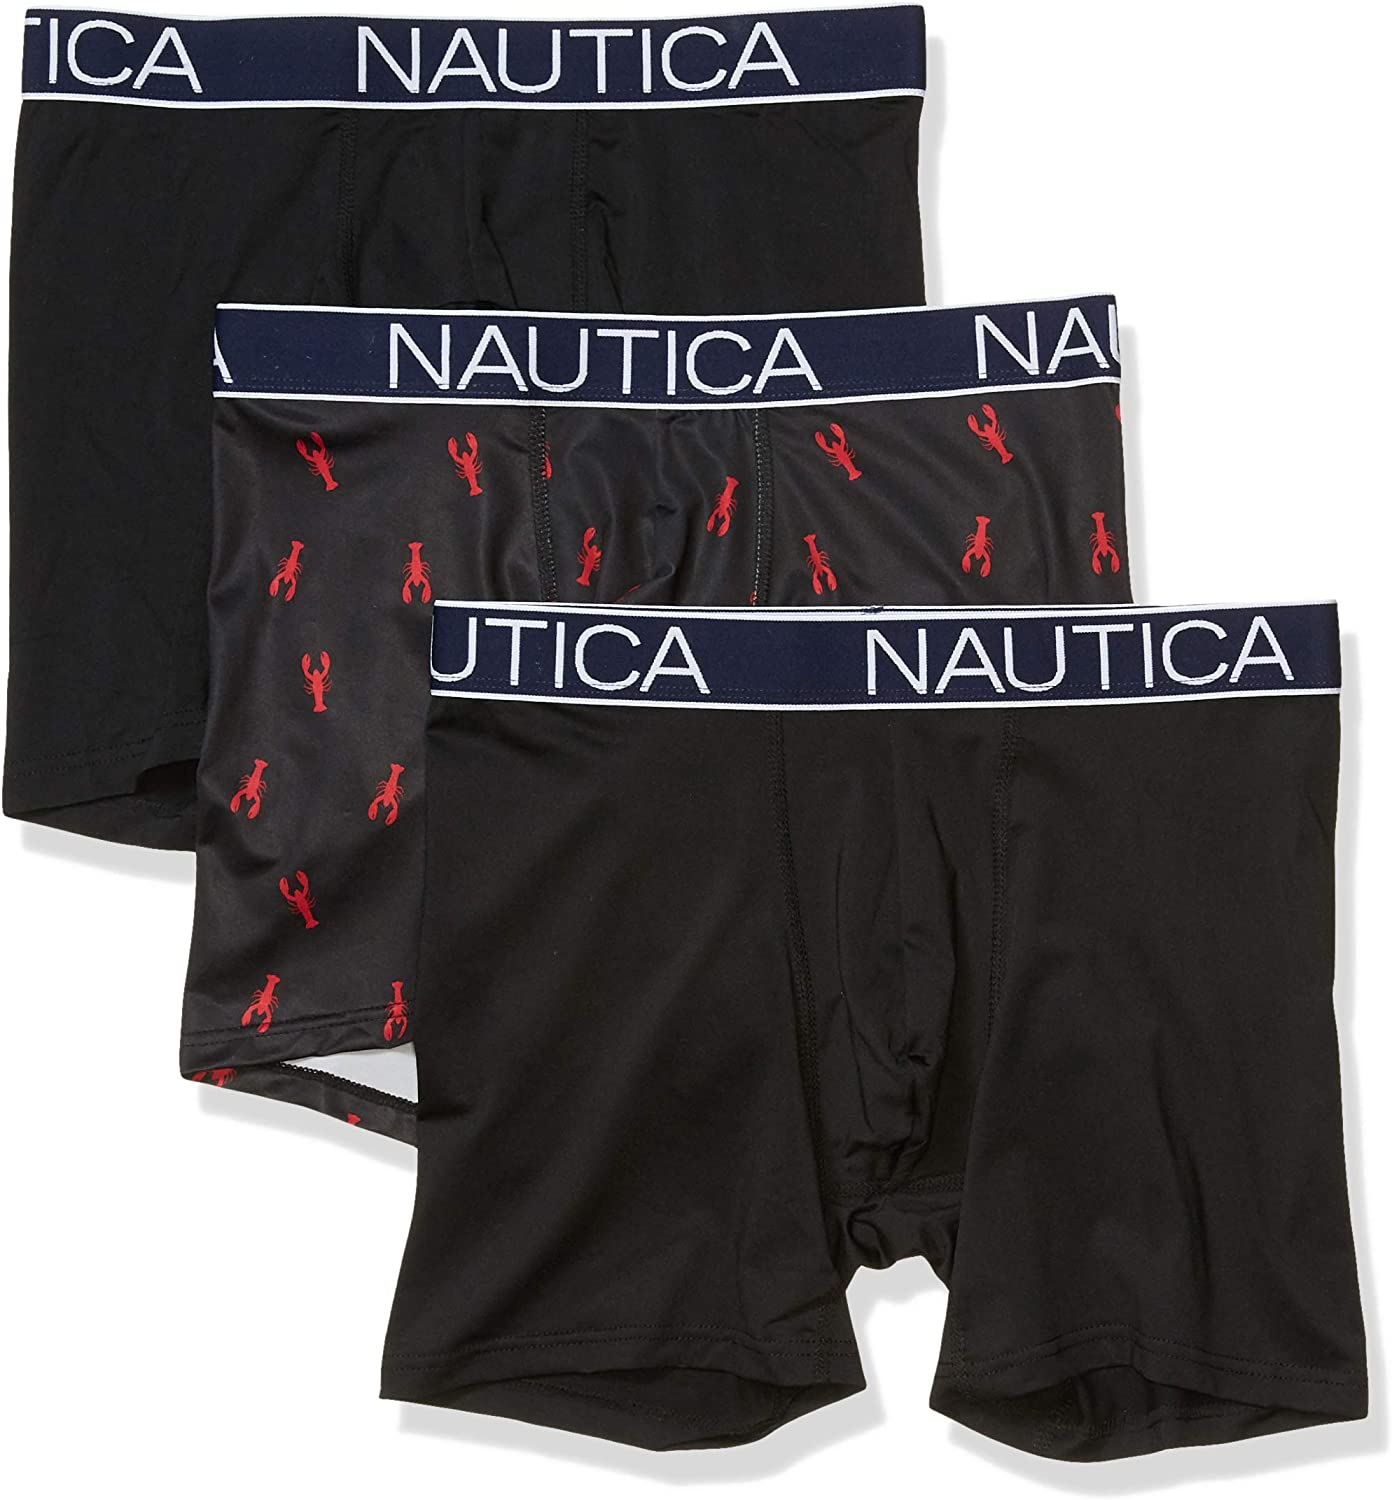 Nautica Men's Directly managed store Brushed Poly Boxer 3 Pack Ranking TOP7 Brief